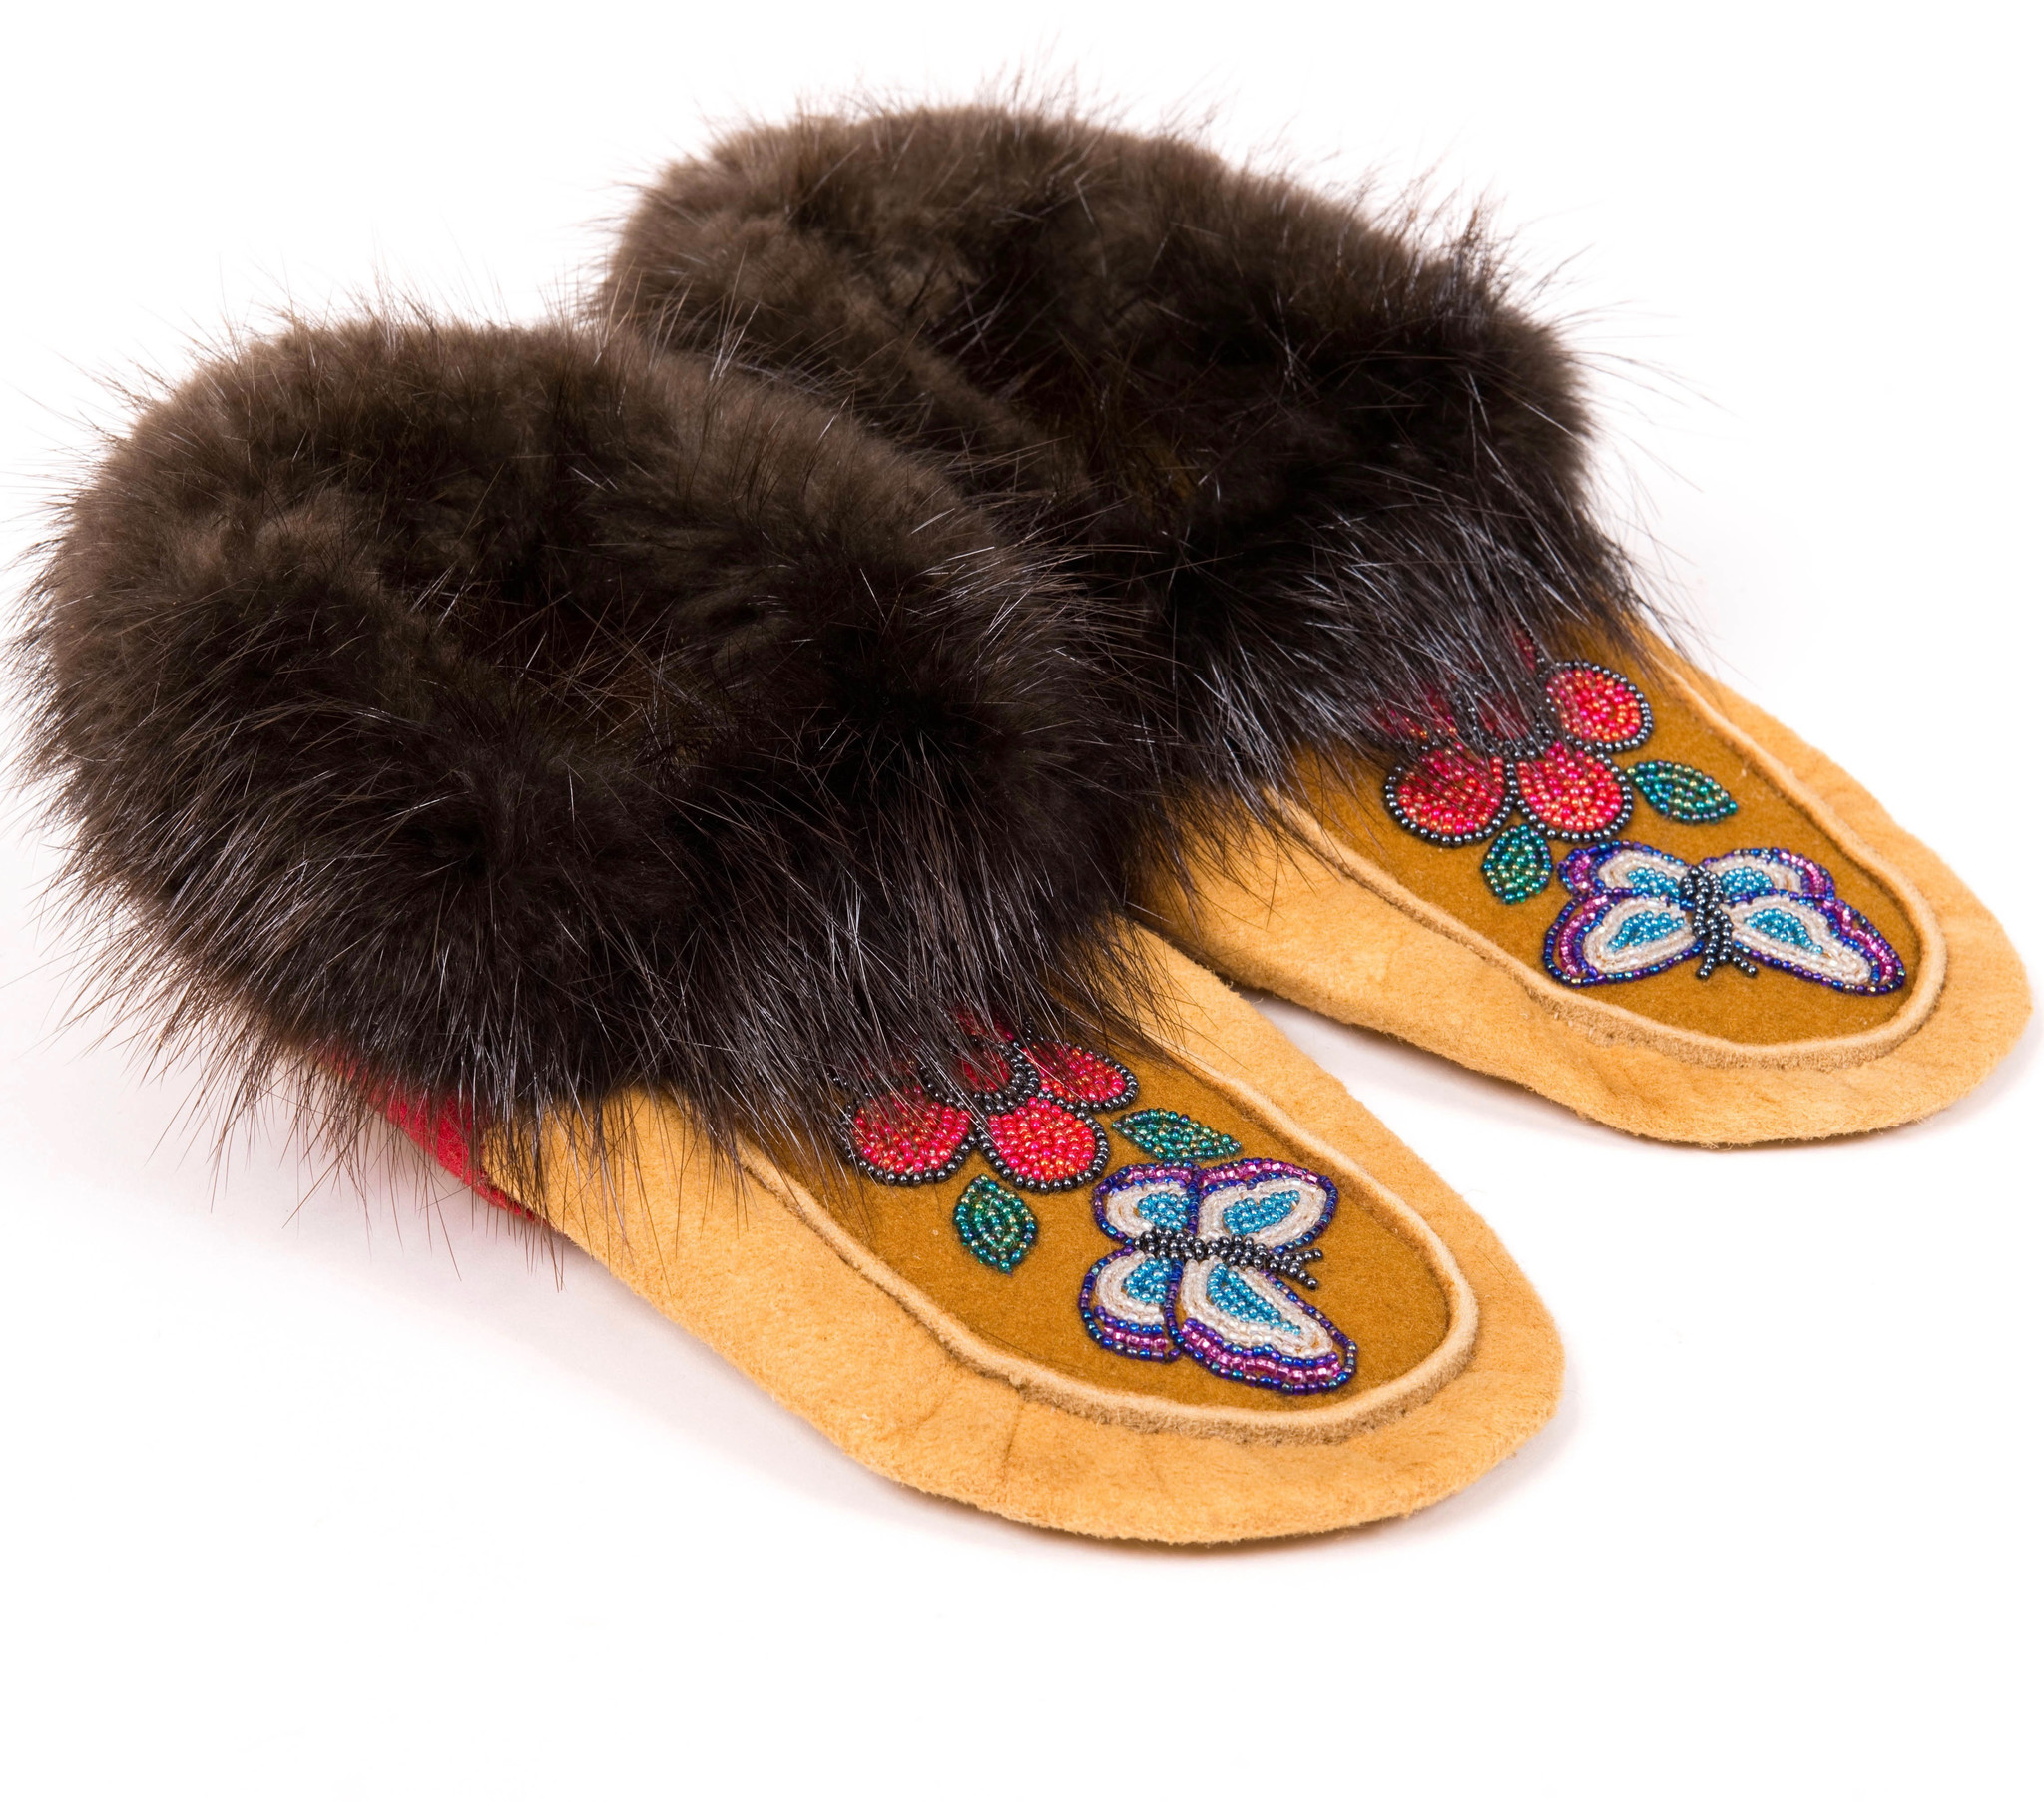 Traditional Moosehide moccasins